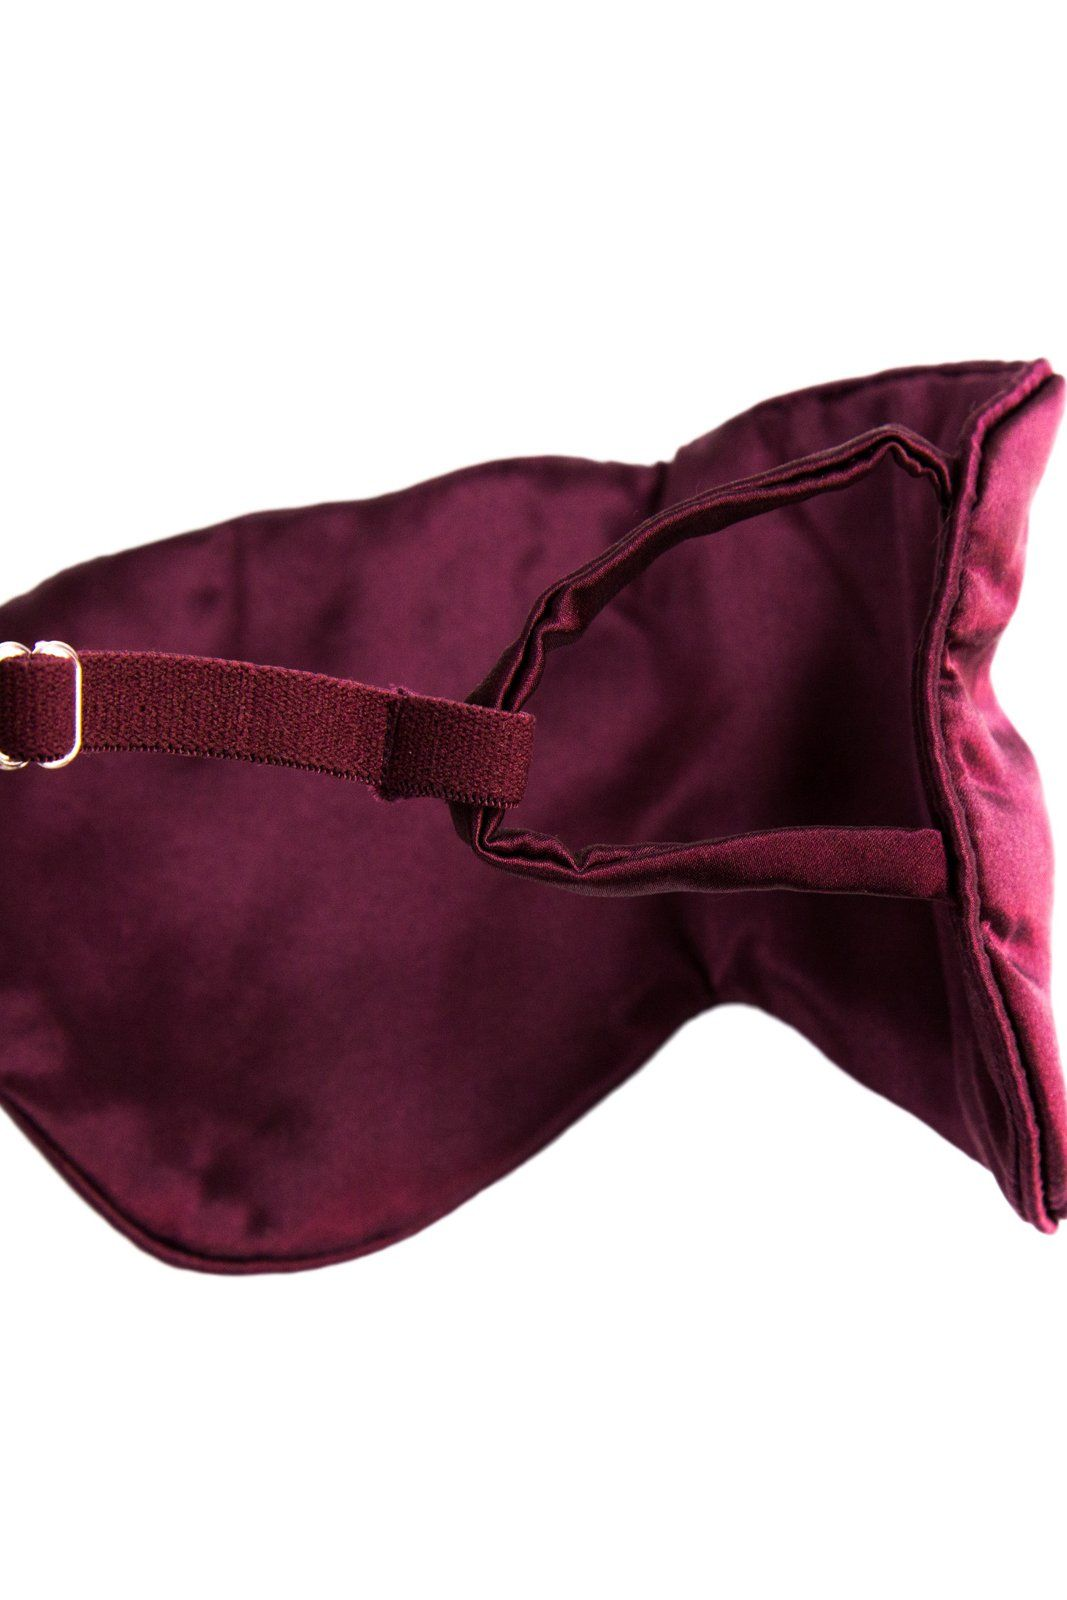 100% Pure Mulberry Silk Sleep Mask: 25 Momme